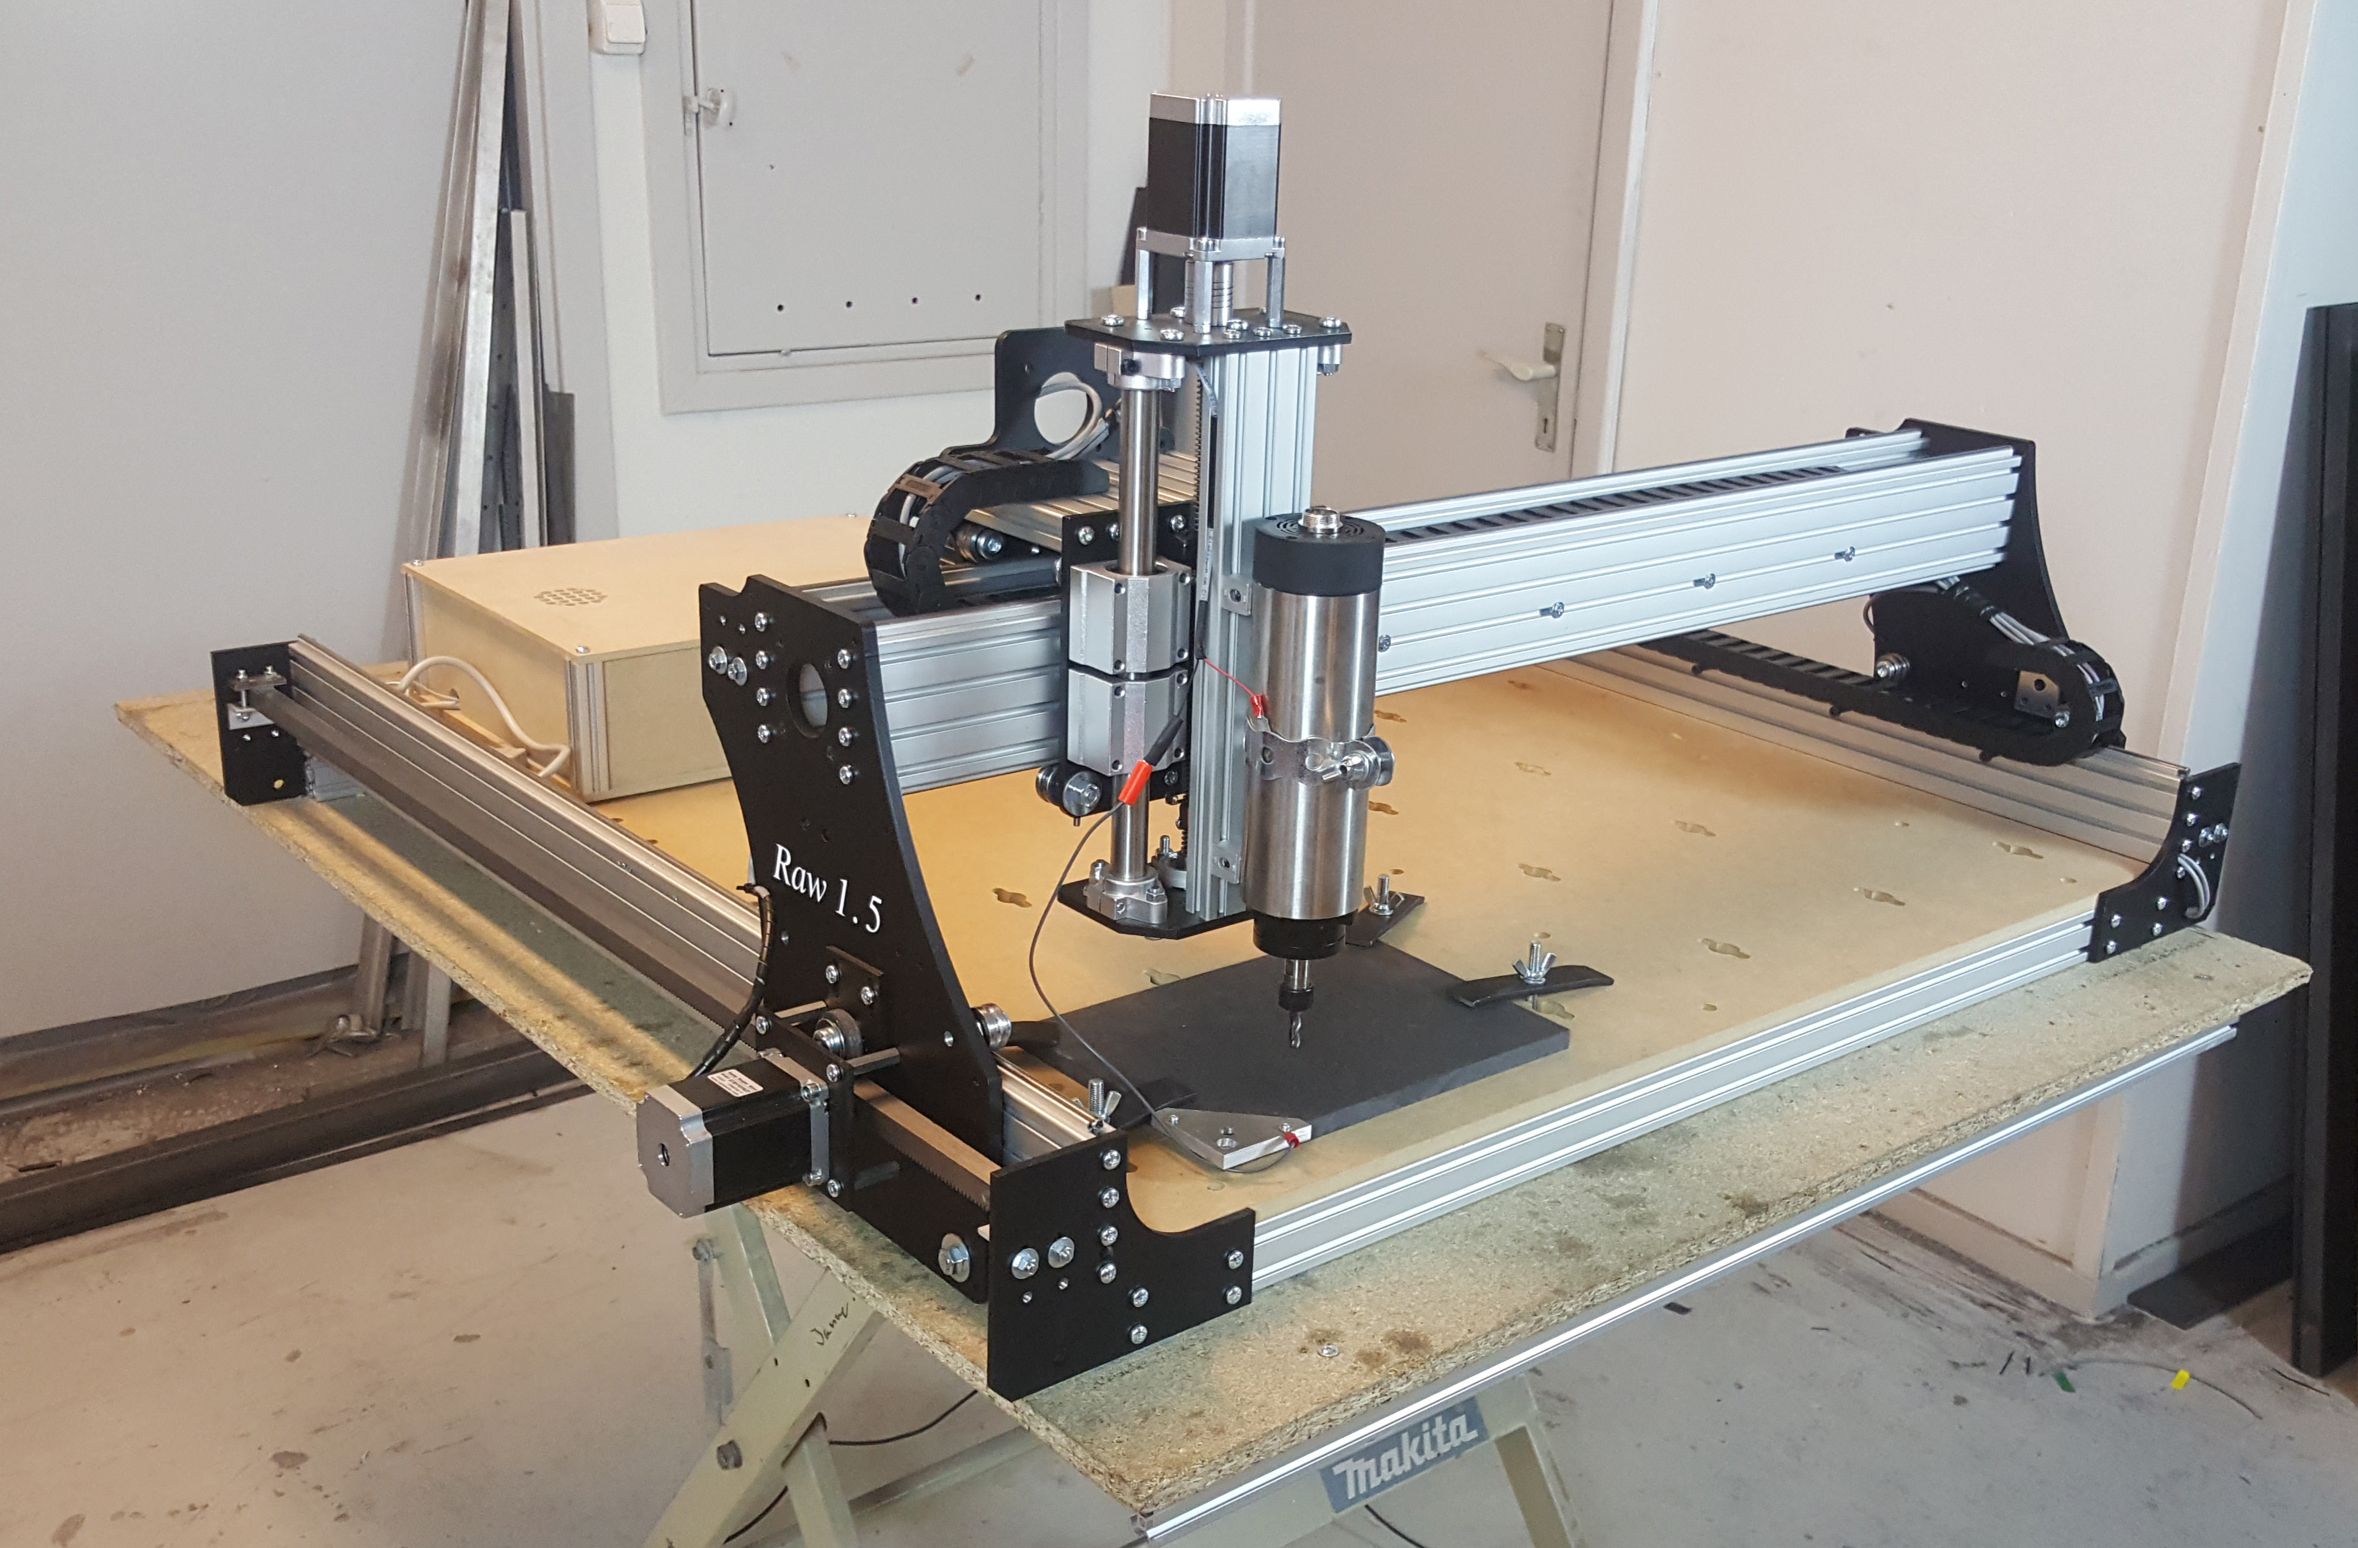 Raw 15 cnc do it yourself kit 100x100cm with racks and pinions product description solutioingenieria Choice Image